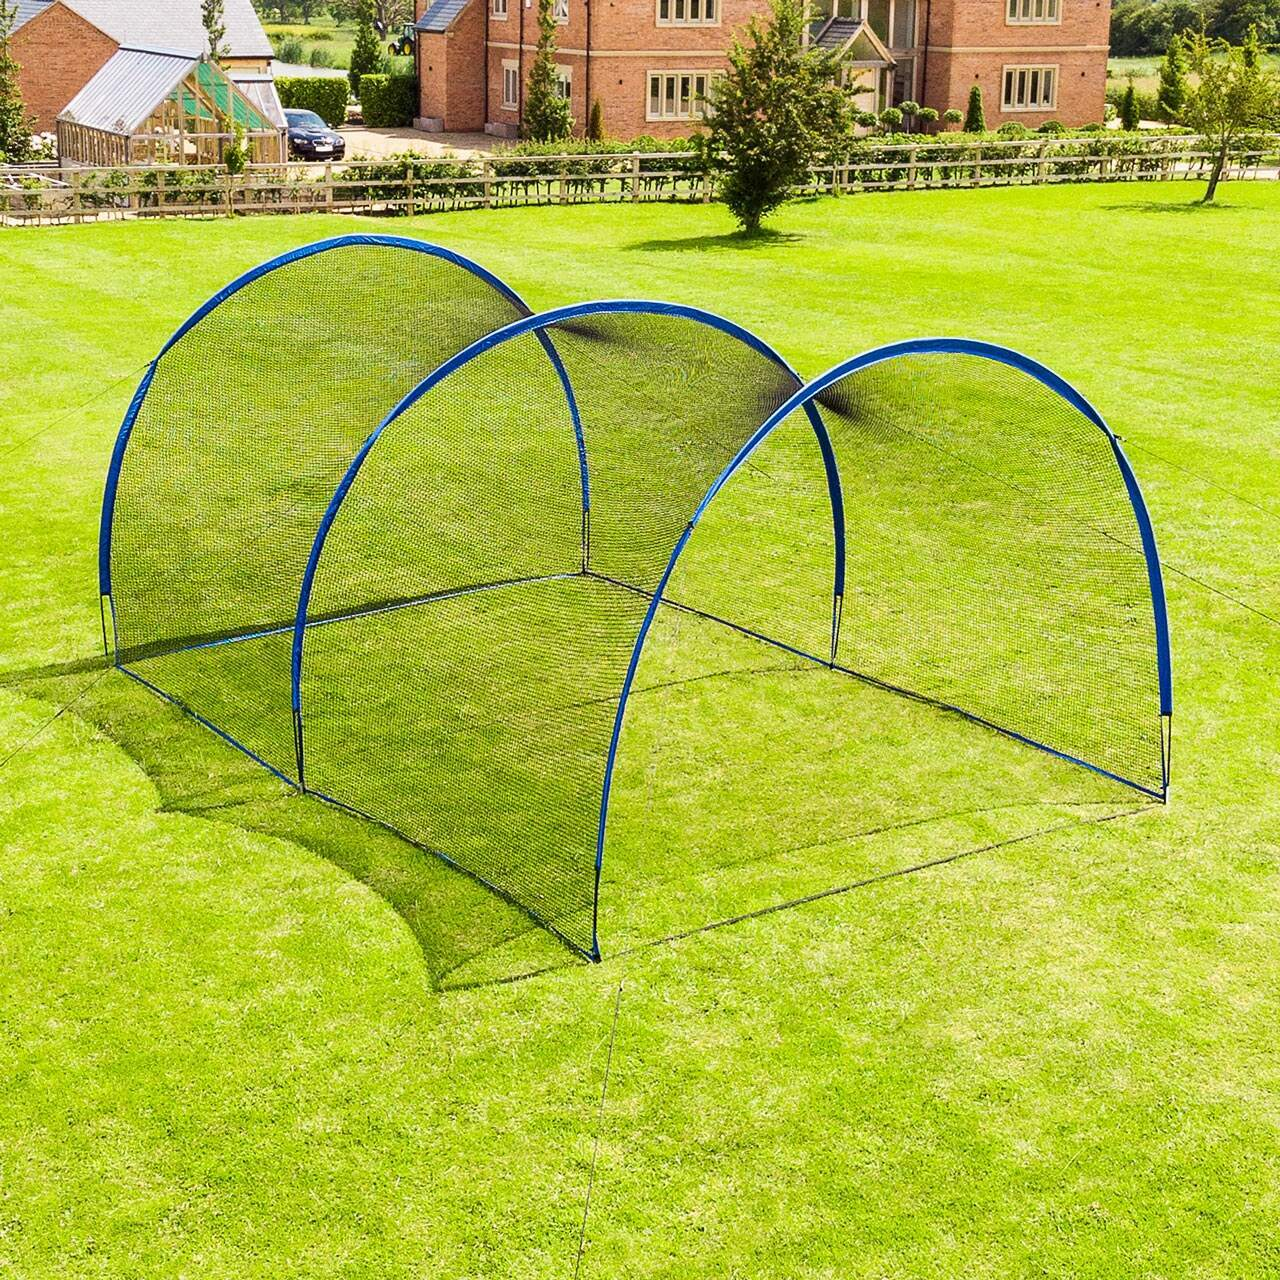 FORTRESS Pop-Up Cricket Batting Net